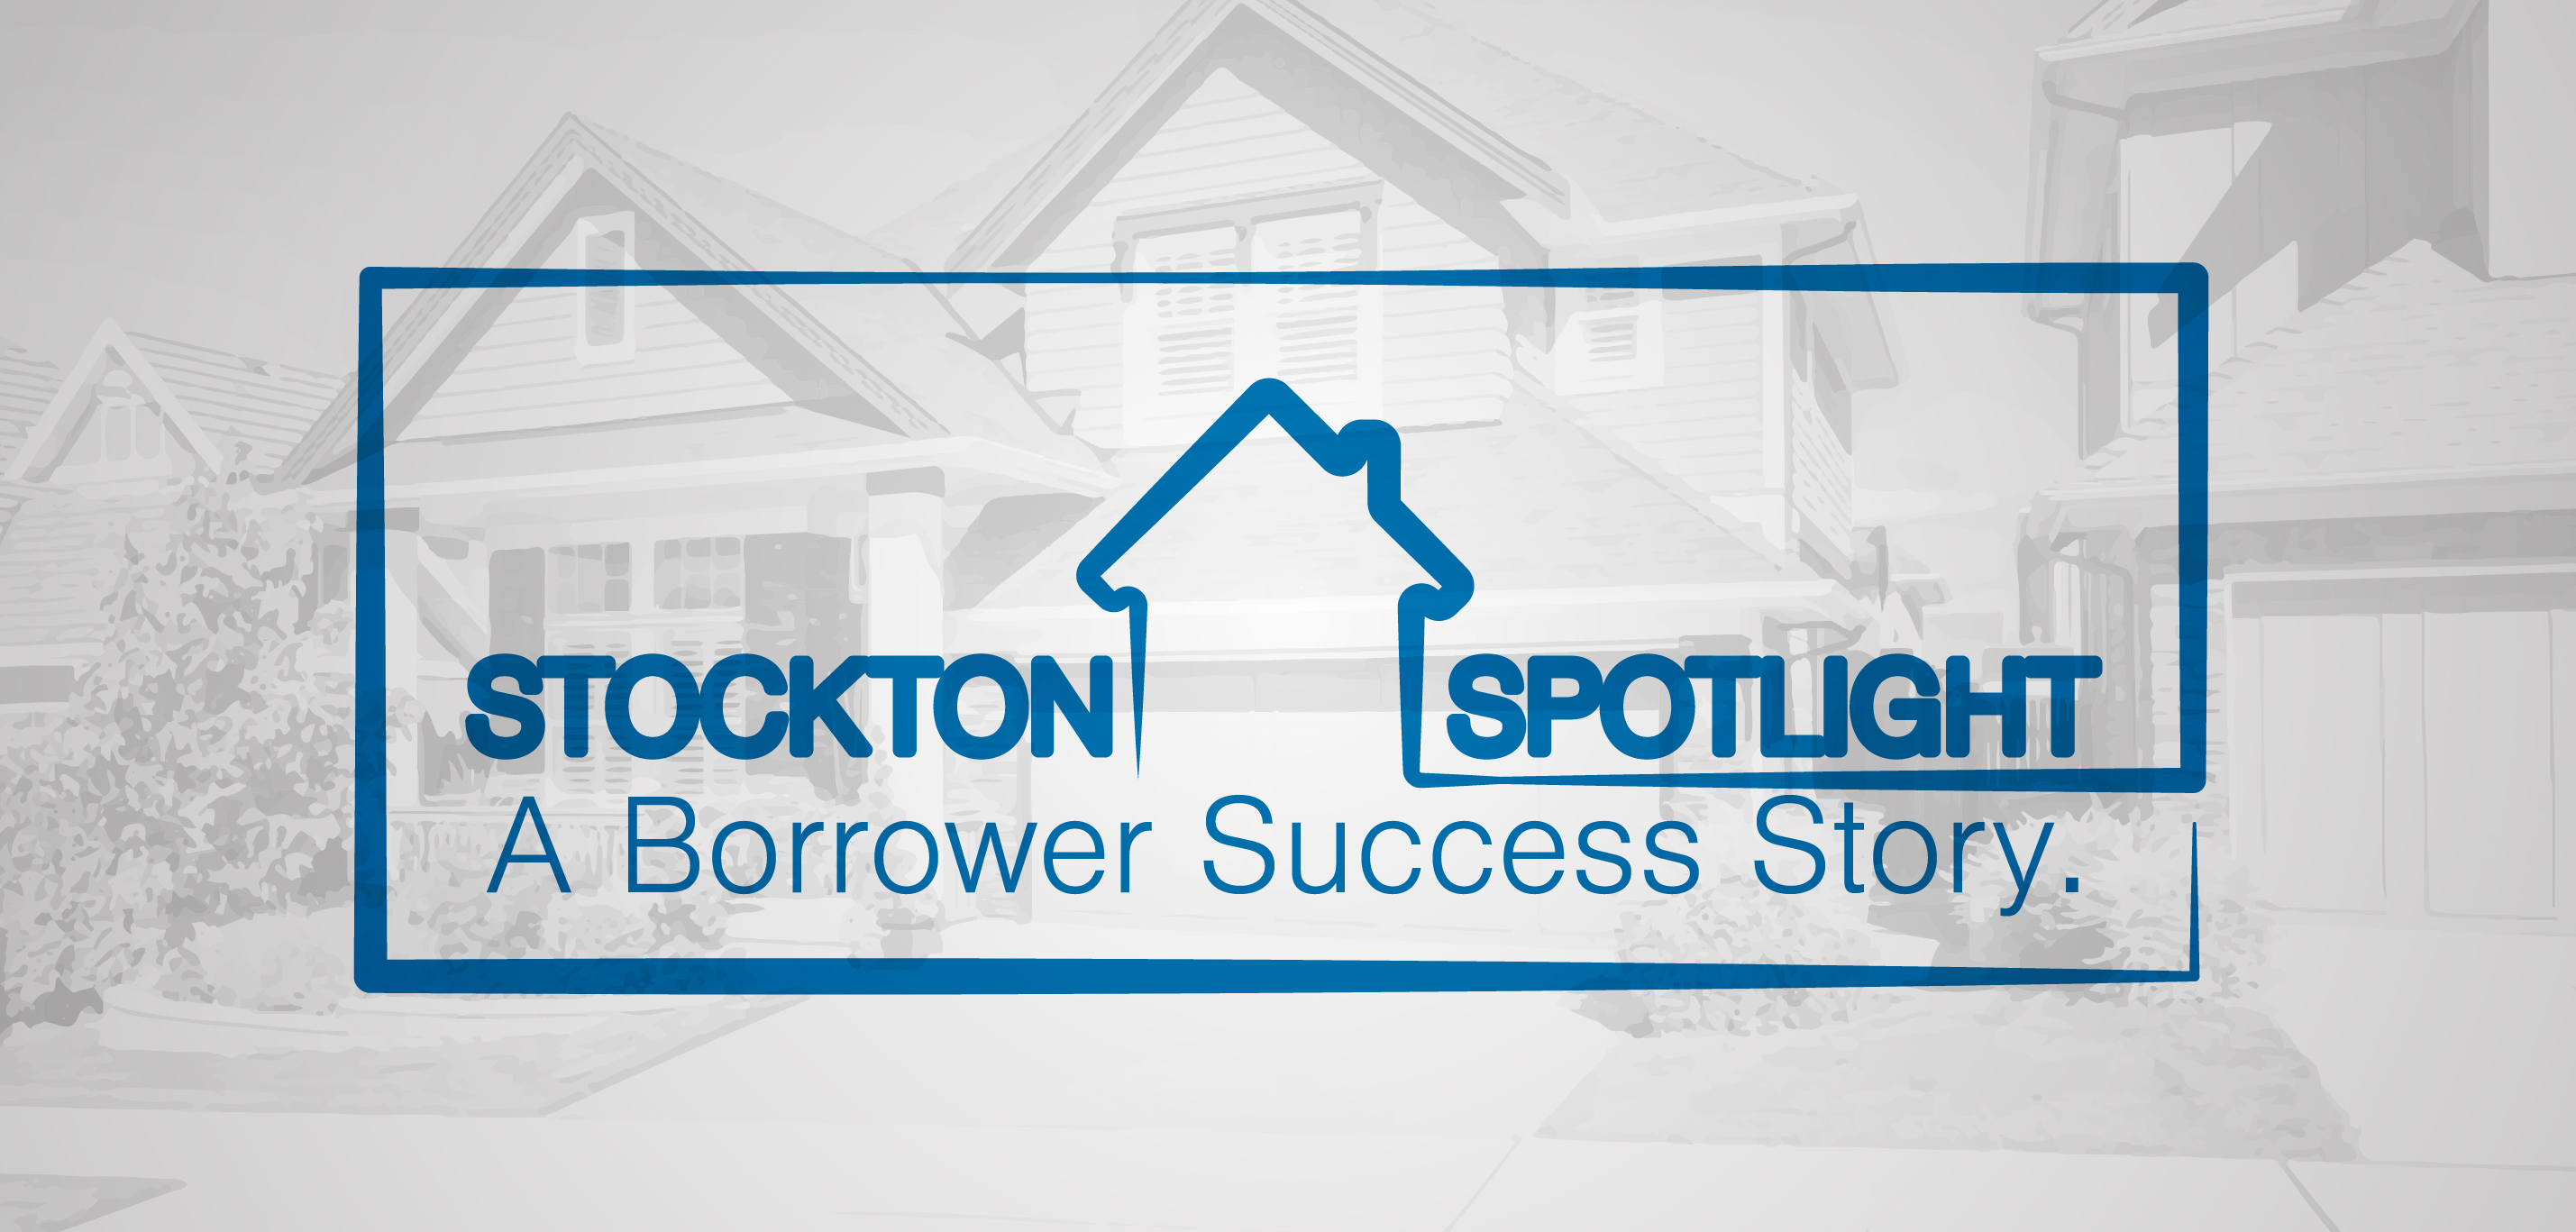 Stockton_Spotlight_logo_graphic-01